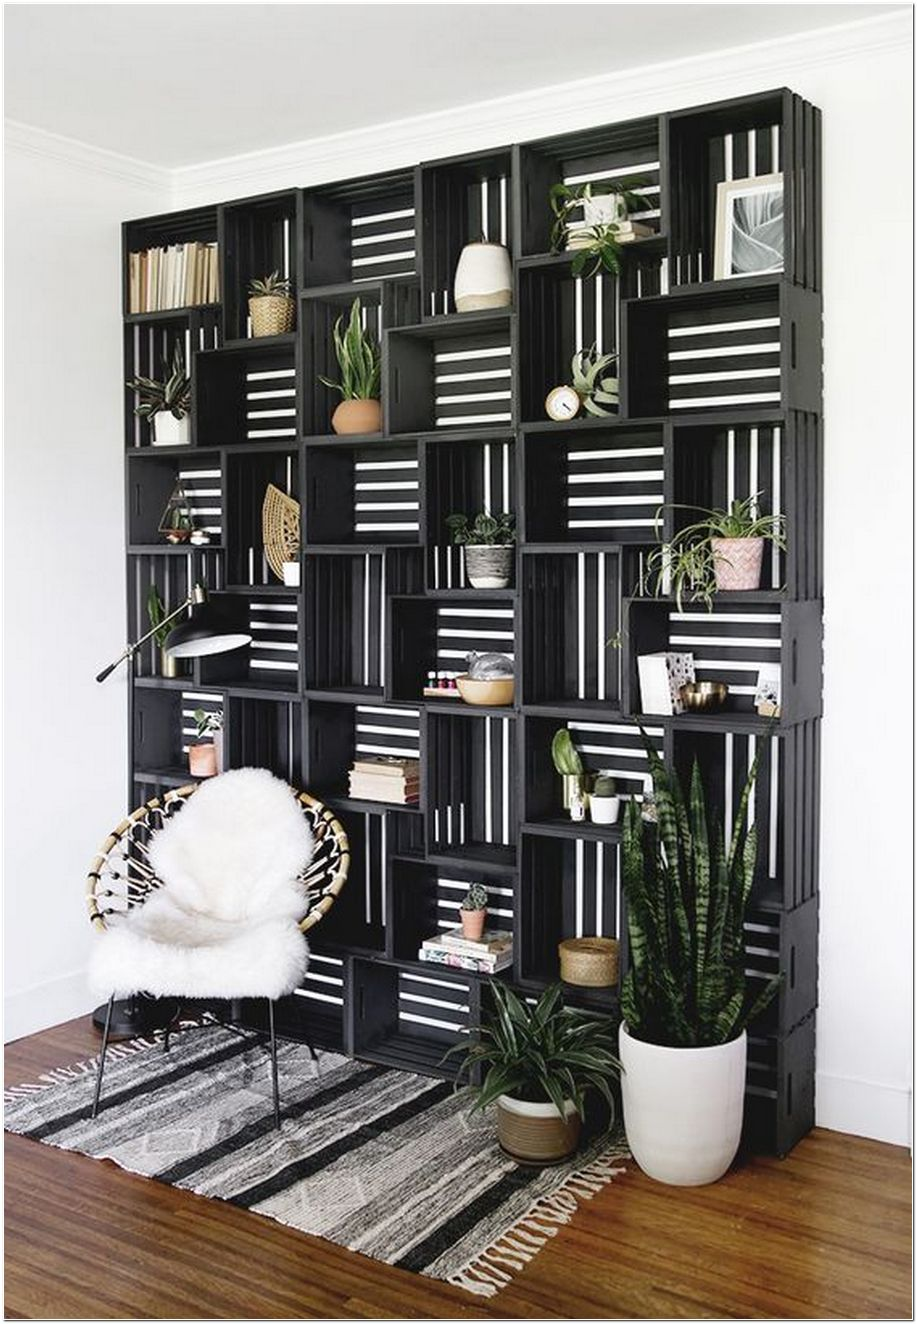 63+ How The DIY Crate Shelf Statement Wall Can Change Your Home